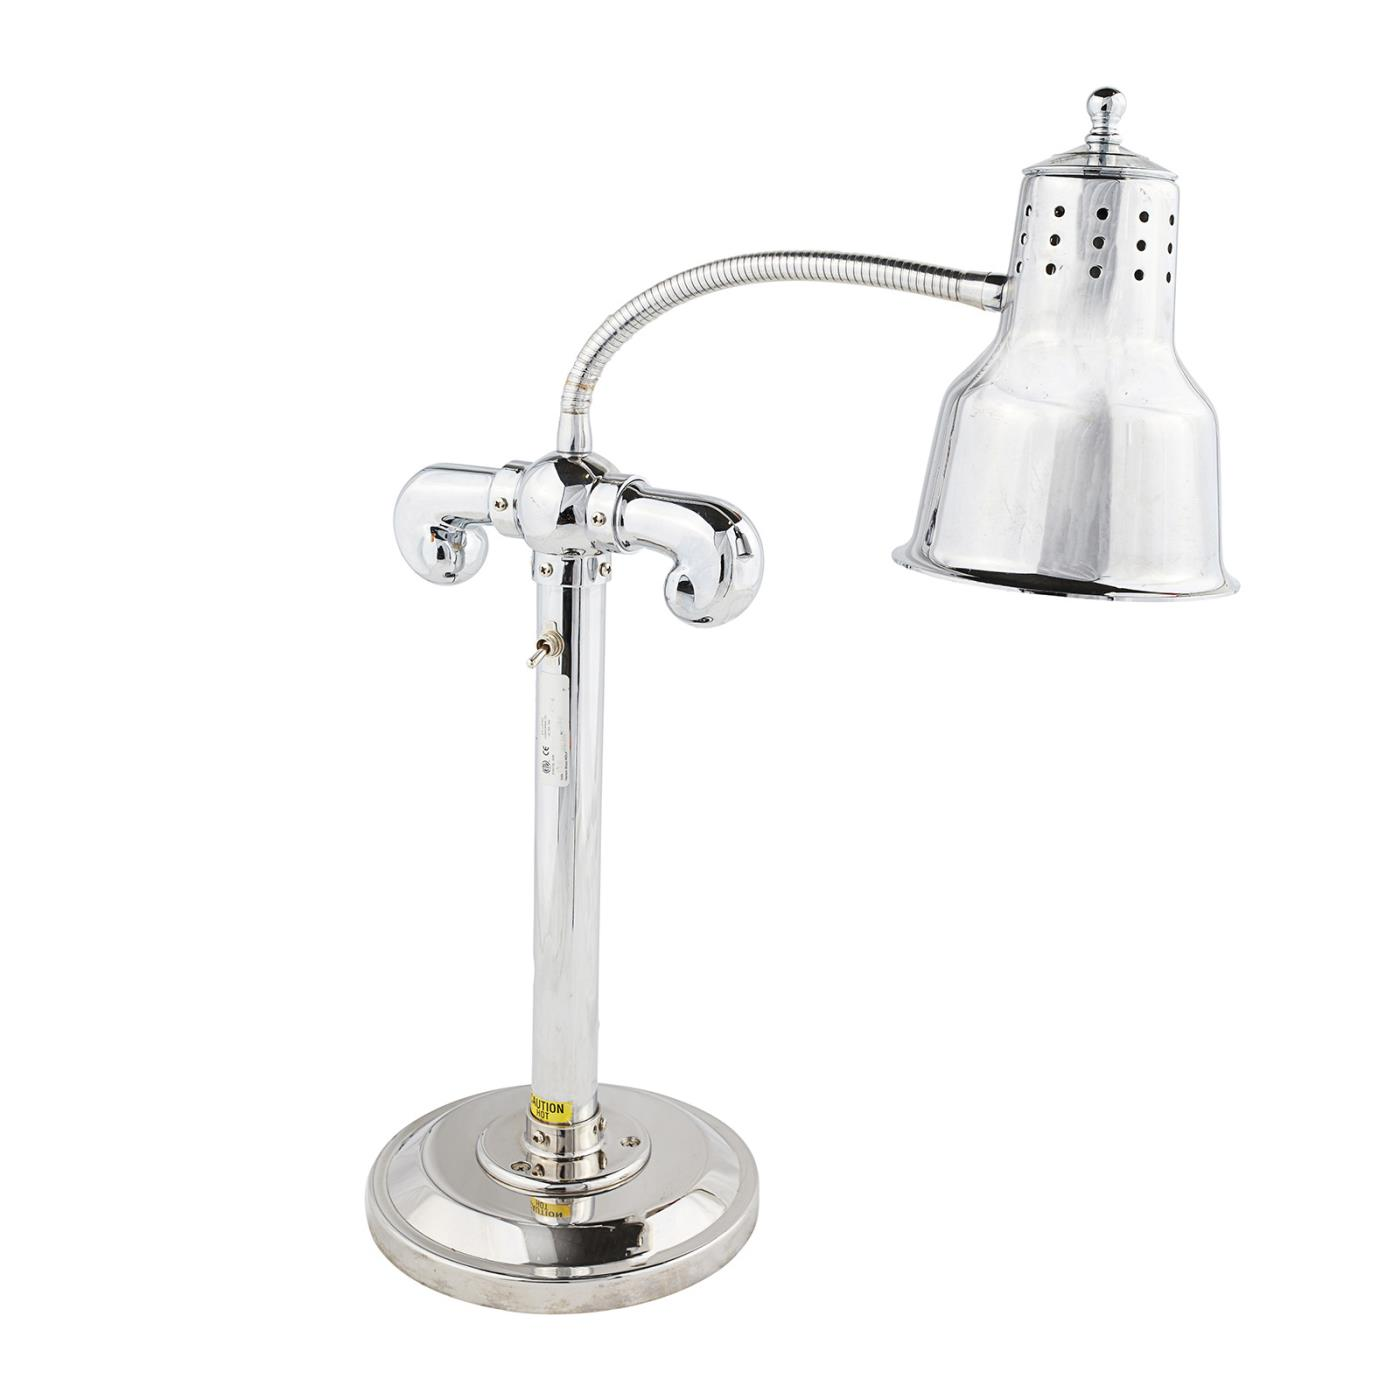 Heat Lamp - Stainless Steel Single Lamp